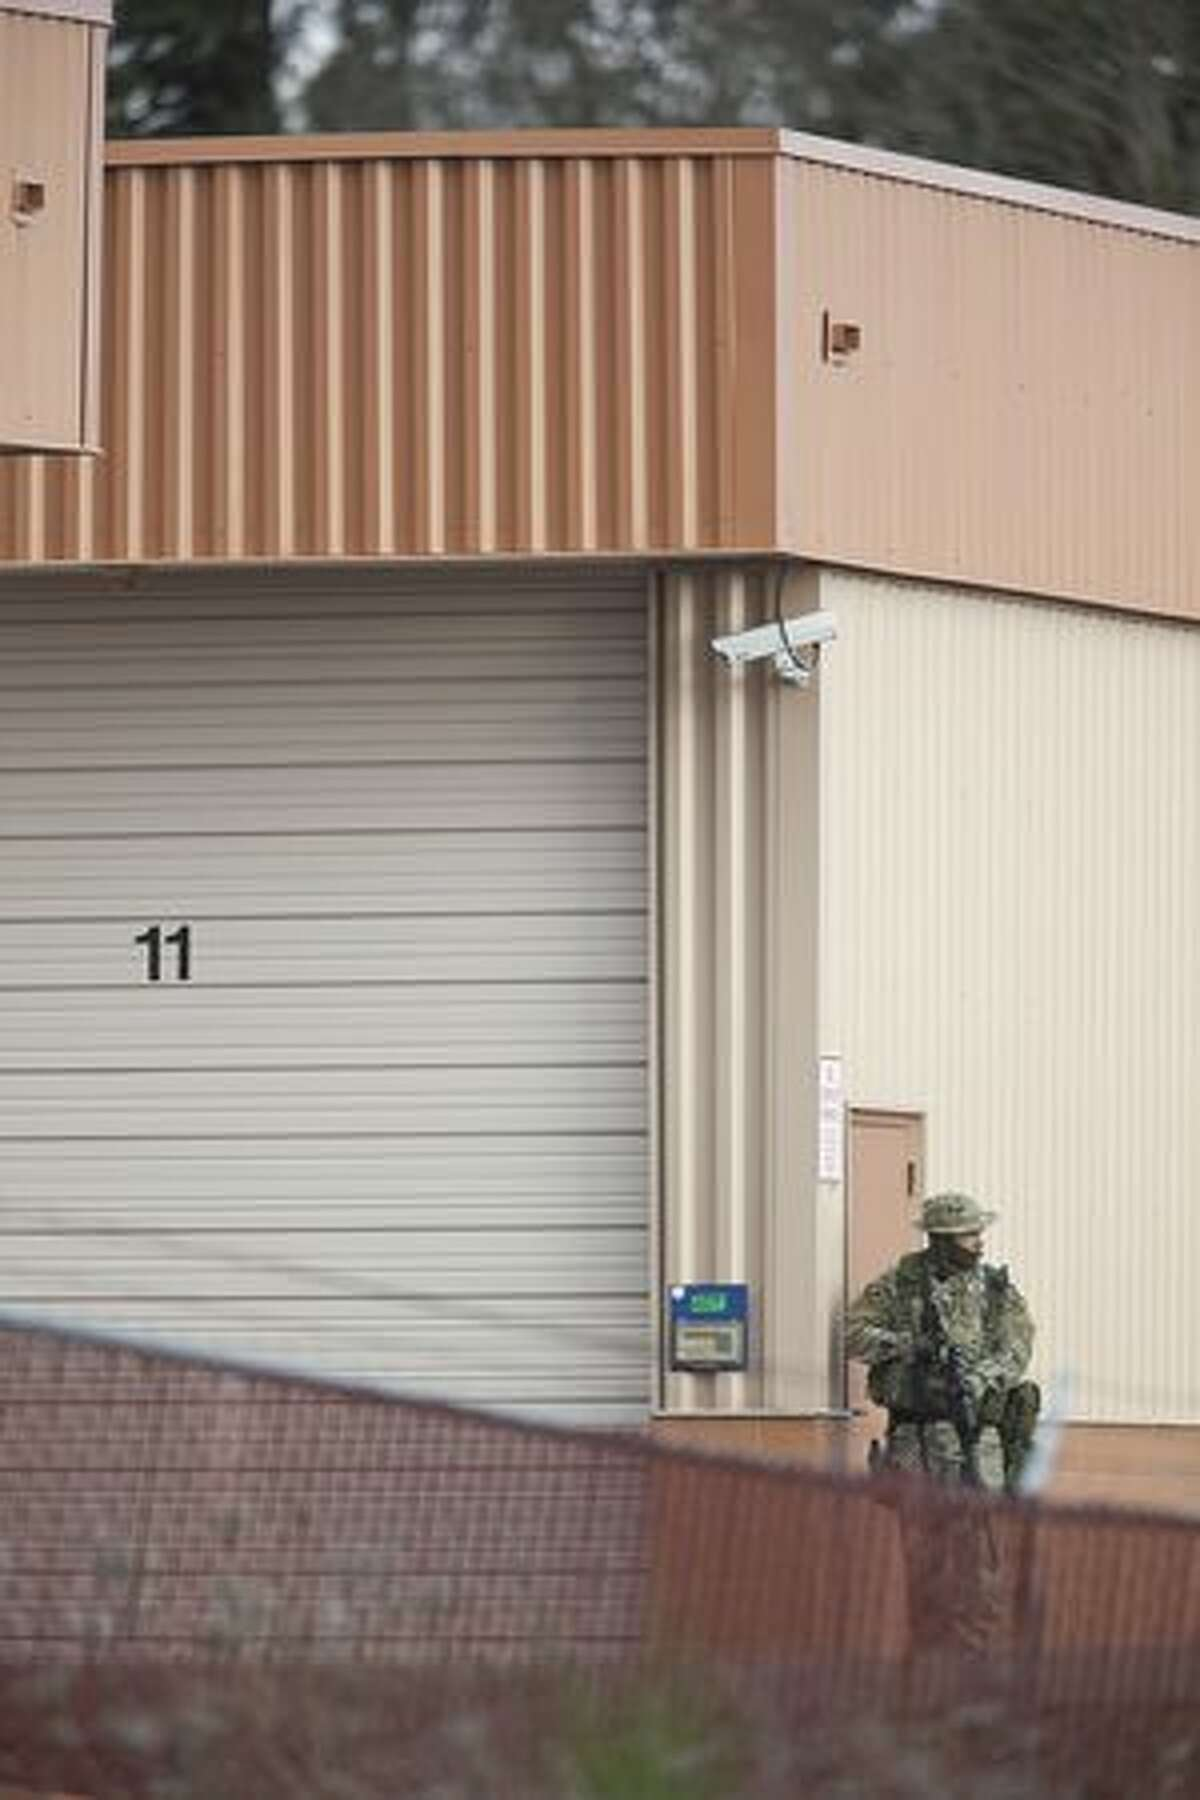 A SWAT team member takes part in the search of storage units near where four Lakewood Police Officers were killed Sunday near Lakewood. A gunman shot and killed four Lakewood Police Officers in a Forza Coffee Company shop Sunday morning in what authorities are describing as a targeted attack.